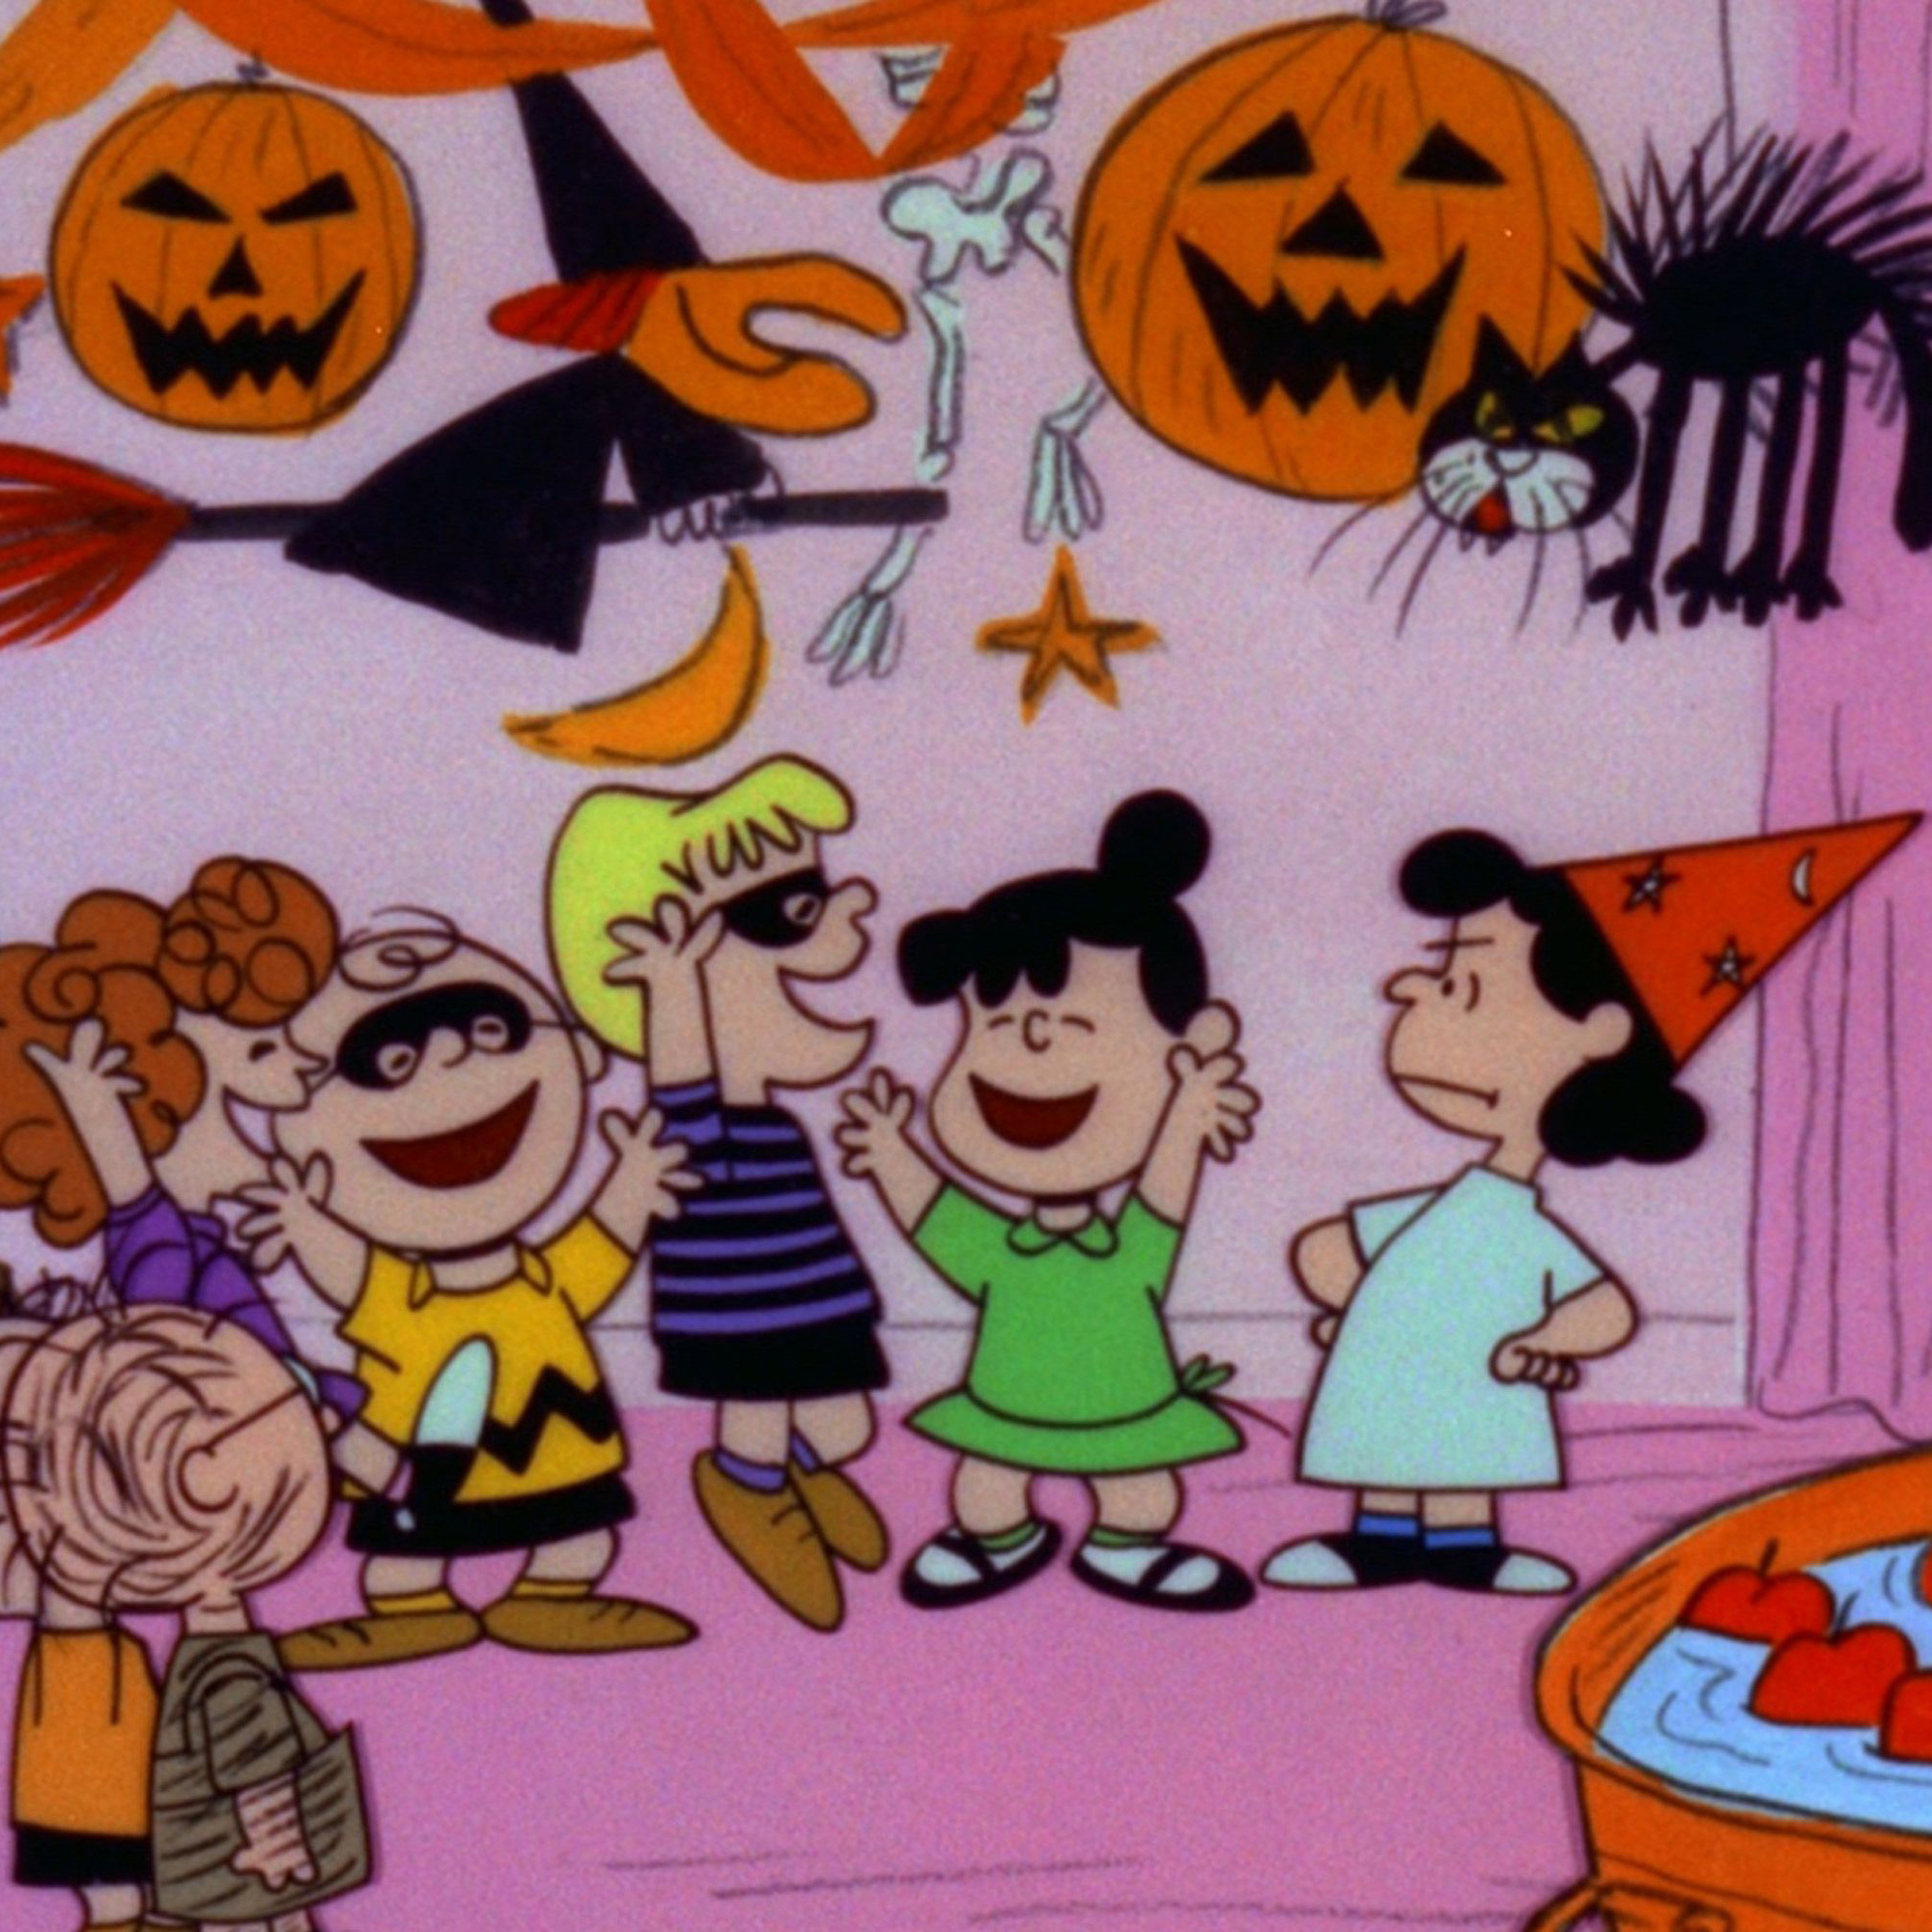 Shriya Samavai_Great Pumpkin Charlie Brown.jpg